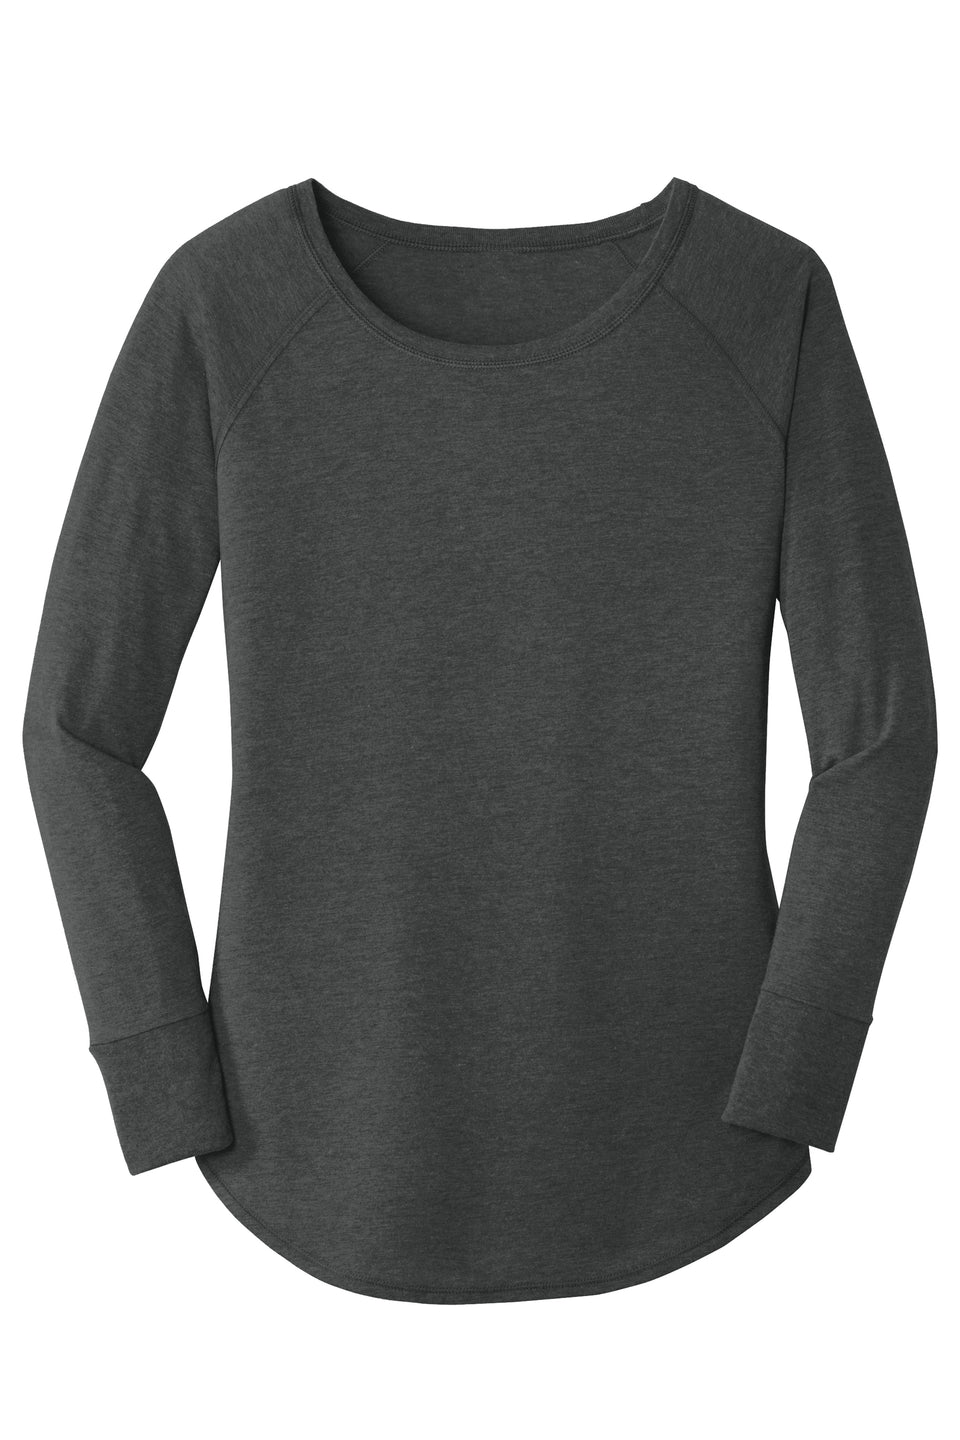 Women's Soft Blended Tunic